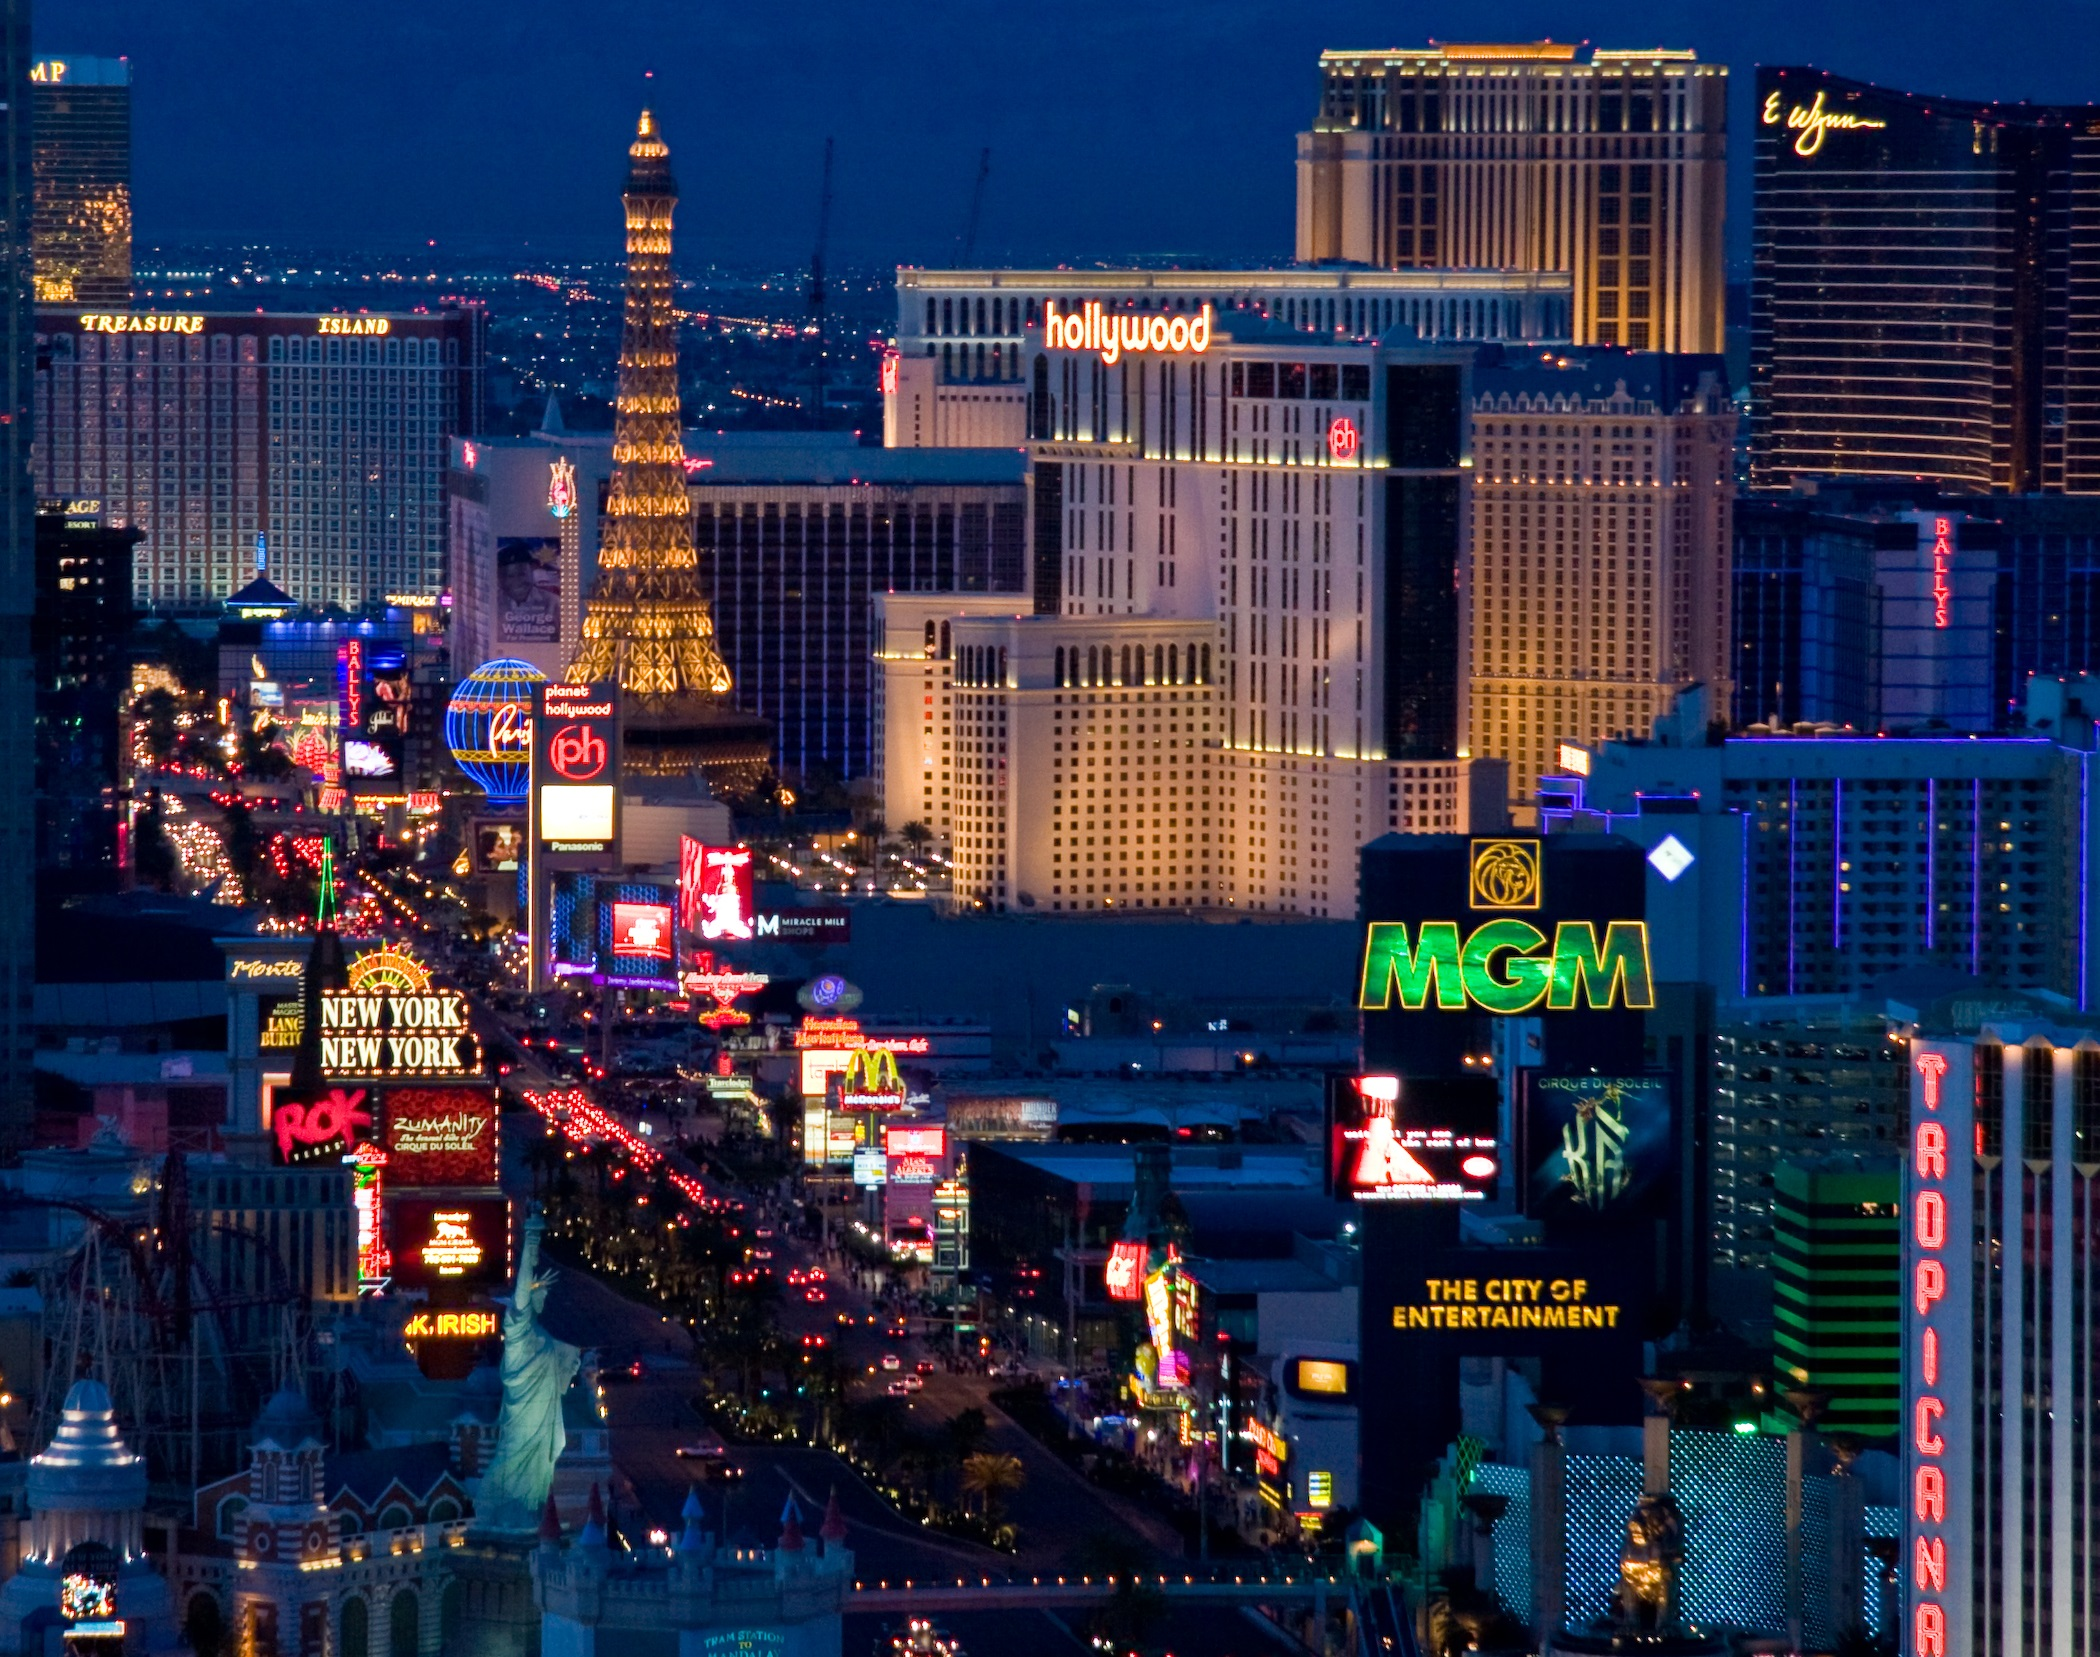 The Las Vegas Strip at dusk